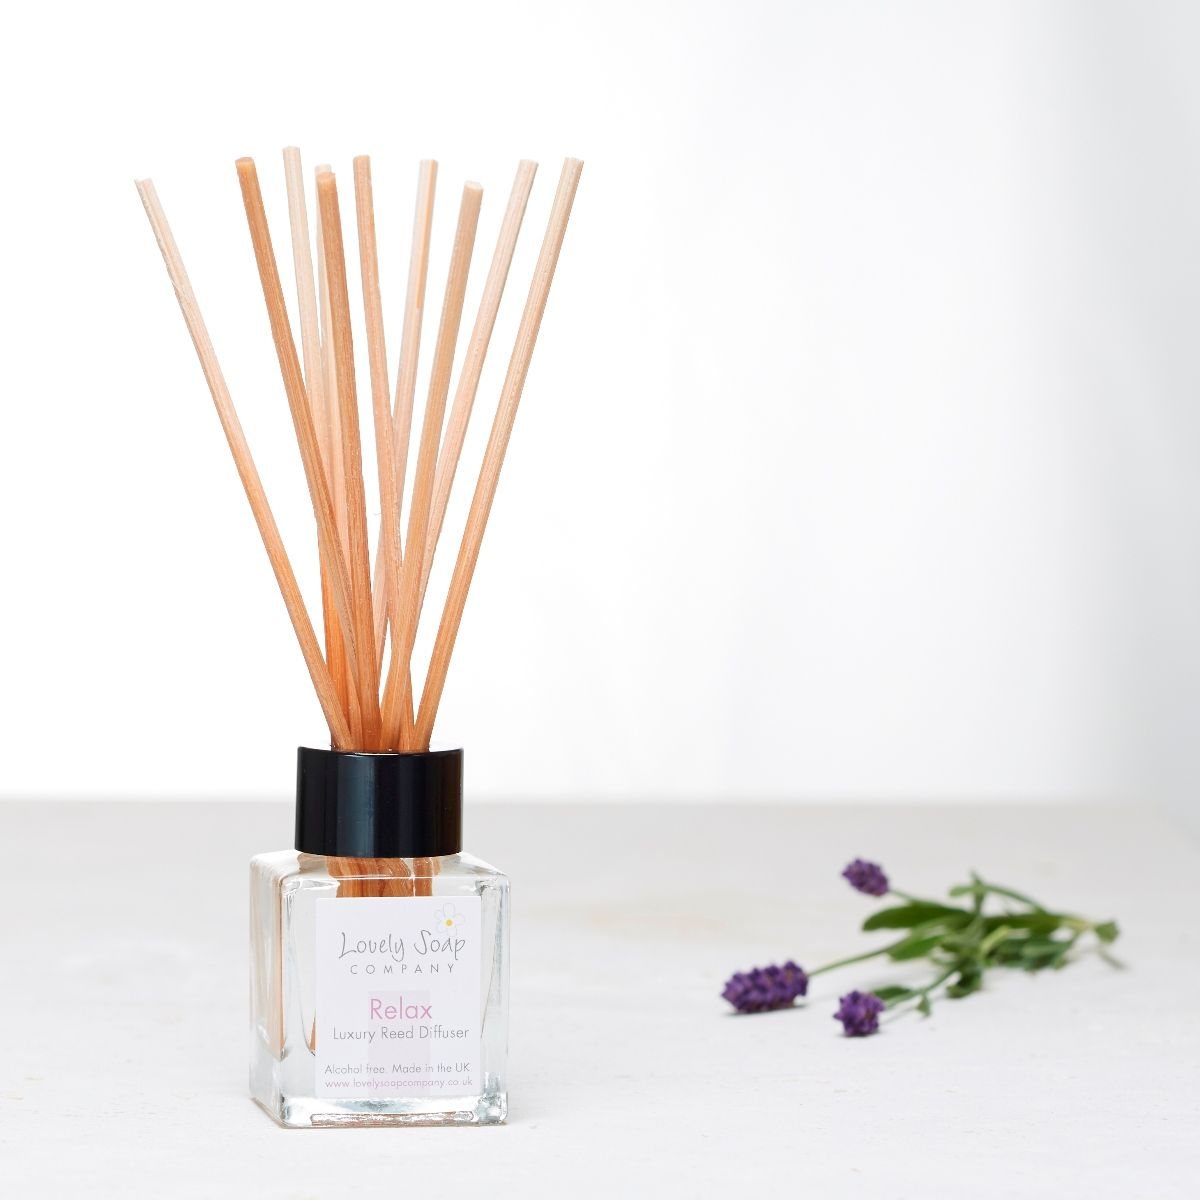 Relax aromatherapy reed diffuser by Lovely Soap Company